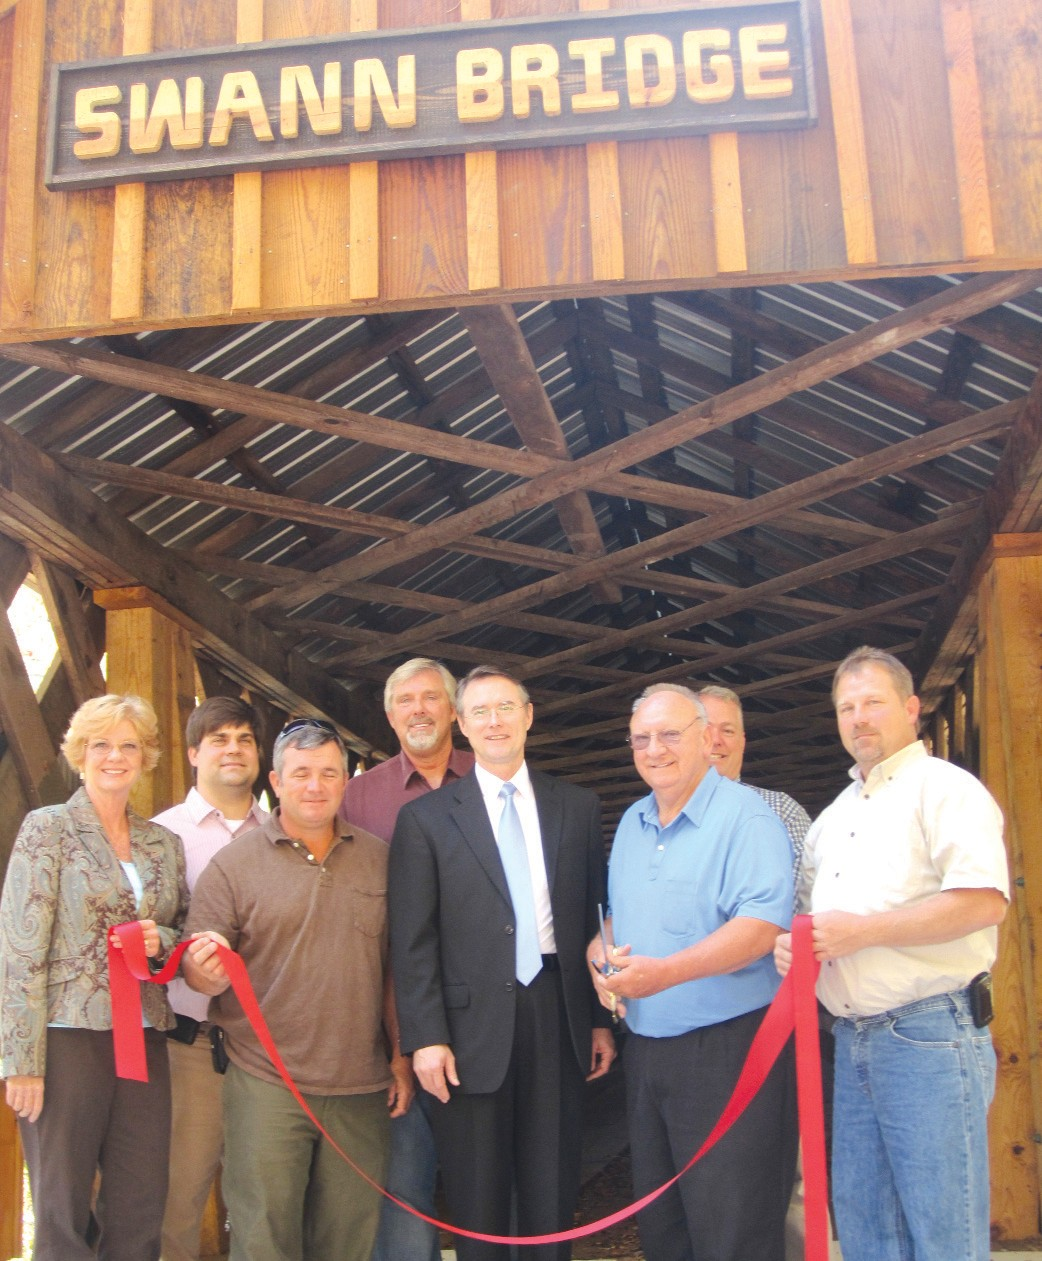 The photo shows the group that helped bring the covered bridge renovation project to completion. They spoke briefly at a ceremony at Swann Bridge Monday as two of the bridges – Swann and Easley – were opened to traffic. From left: Sharon Murphree, Friends of the Covered Bridges of Blount County; Winston Sitton, county engineer; District 1 Commissioner Allen Armstrong; Barry Johnson, Friends of the Covered Bridges; Chris Green, probate judge/commission chairman; Bob Smith, president of Bob Smith Construction Company of Trussville and Blount County native, the only contractor to bid on the project; John Friedberg (partially hidden) project manager for Bob Smith Construction; and District 3 Commissioner Dean Calvert.